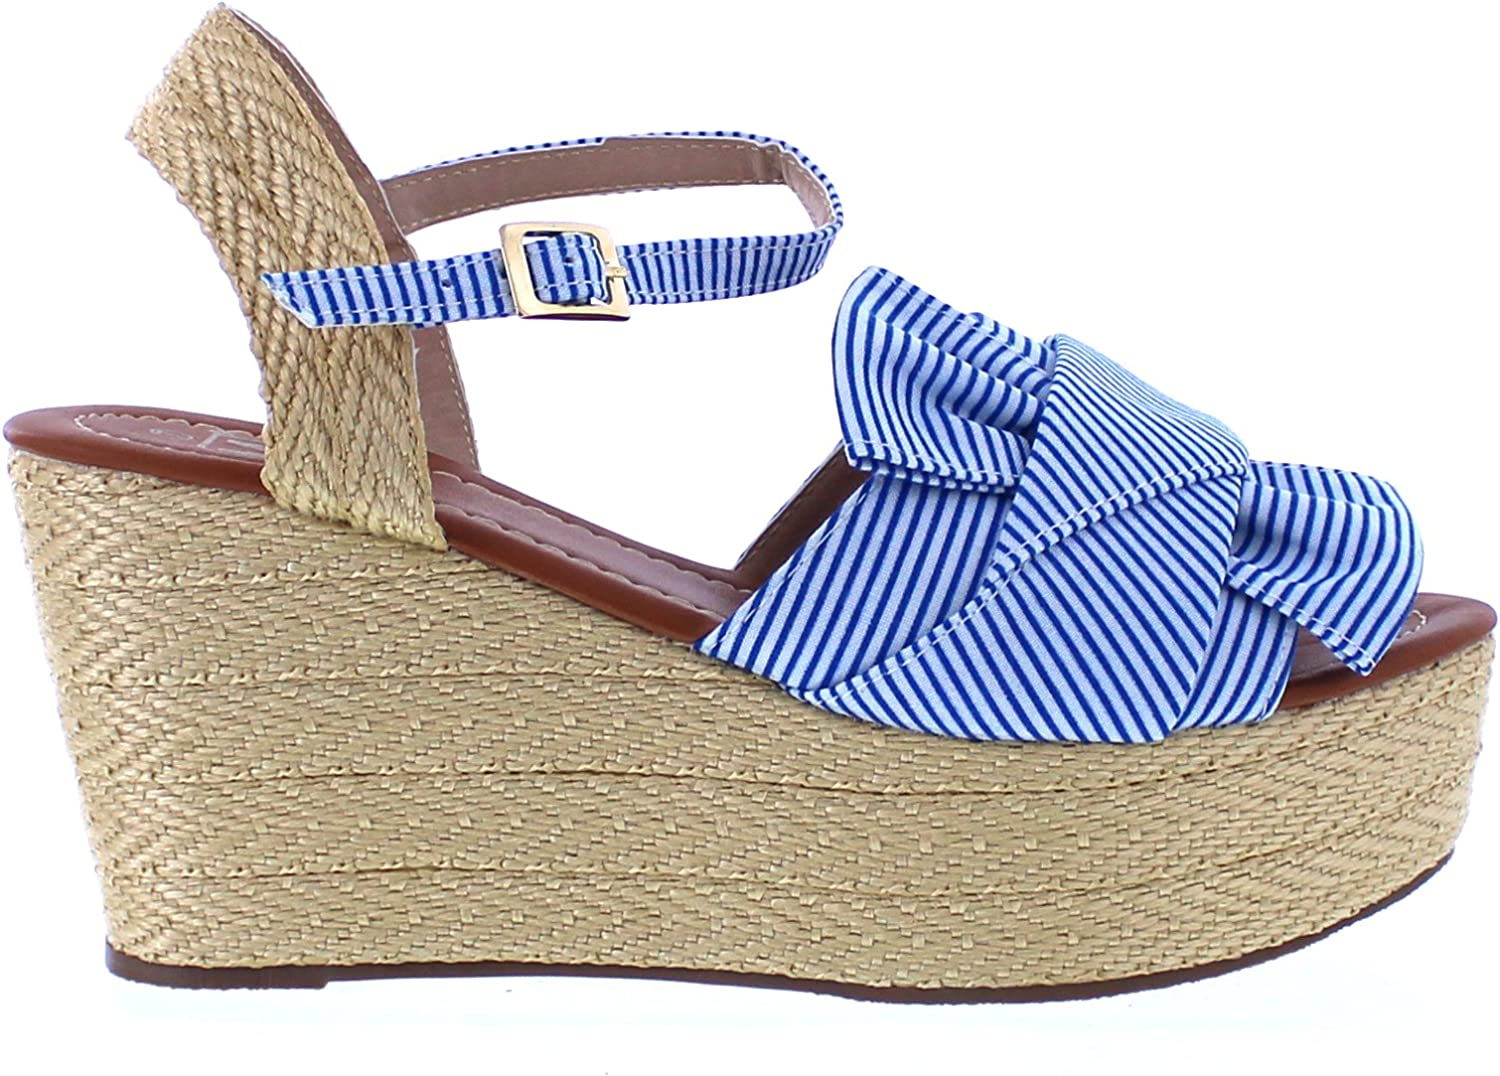 Maker's shoes Womens Espadrille Platform Wedge Heel Peep Toe Ankle Strap (10, bluee Stripes)